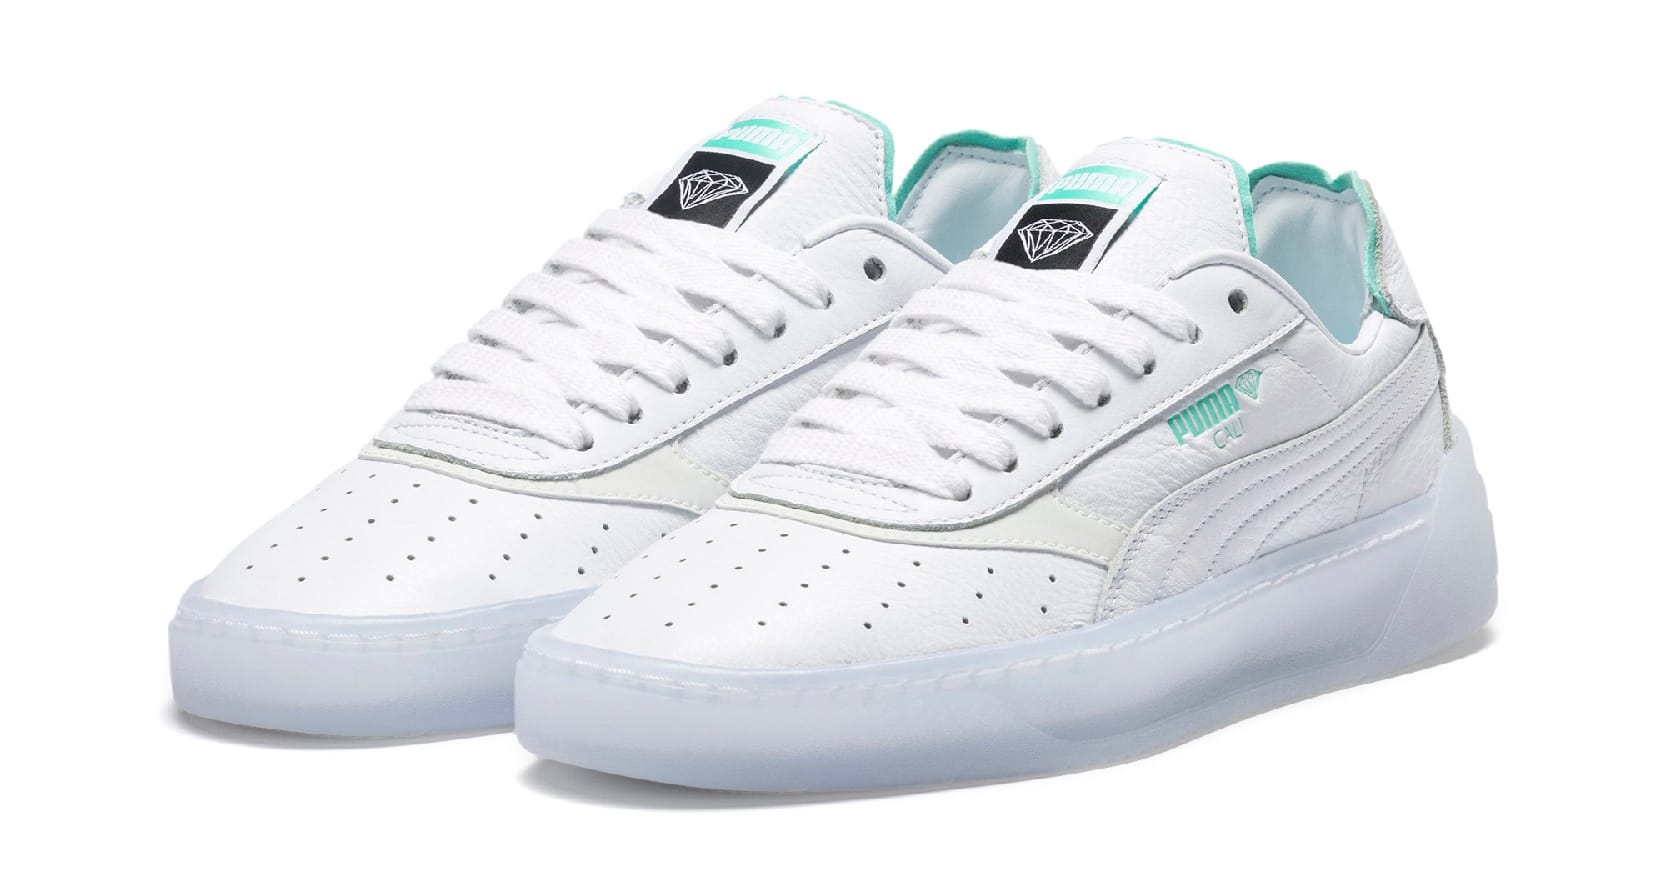 Diamond Supply Co. x Puma Cali-0 369399 (Pair)